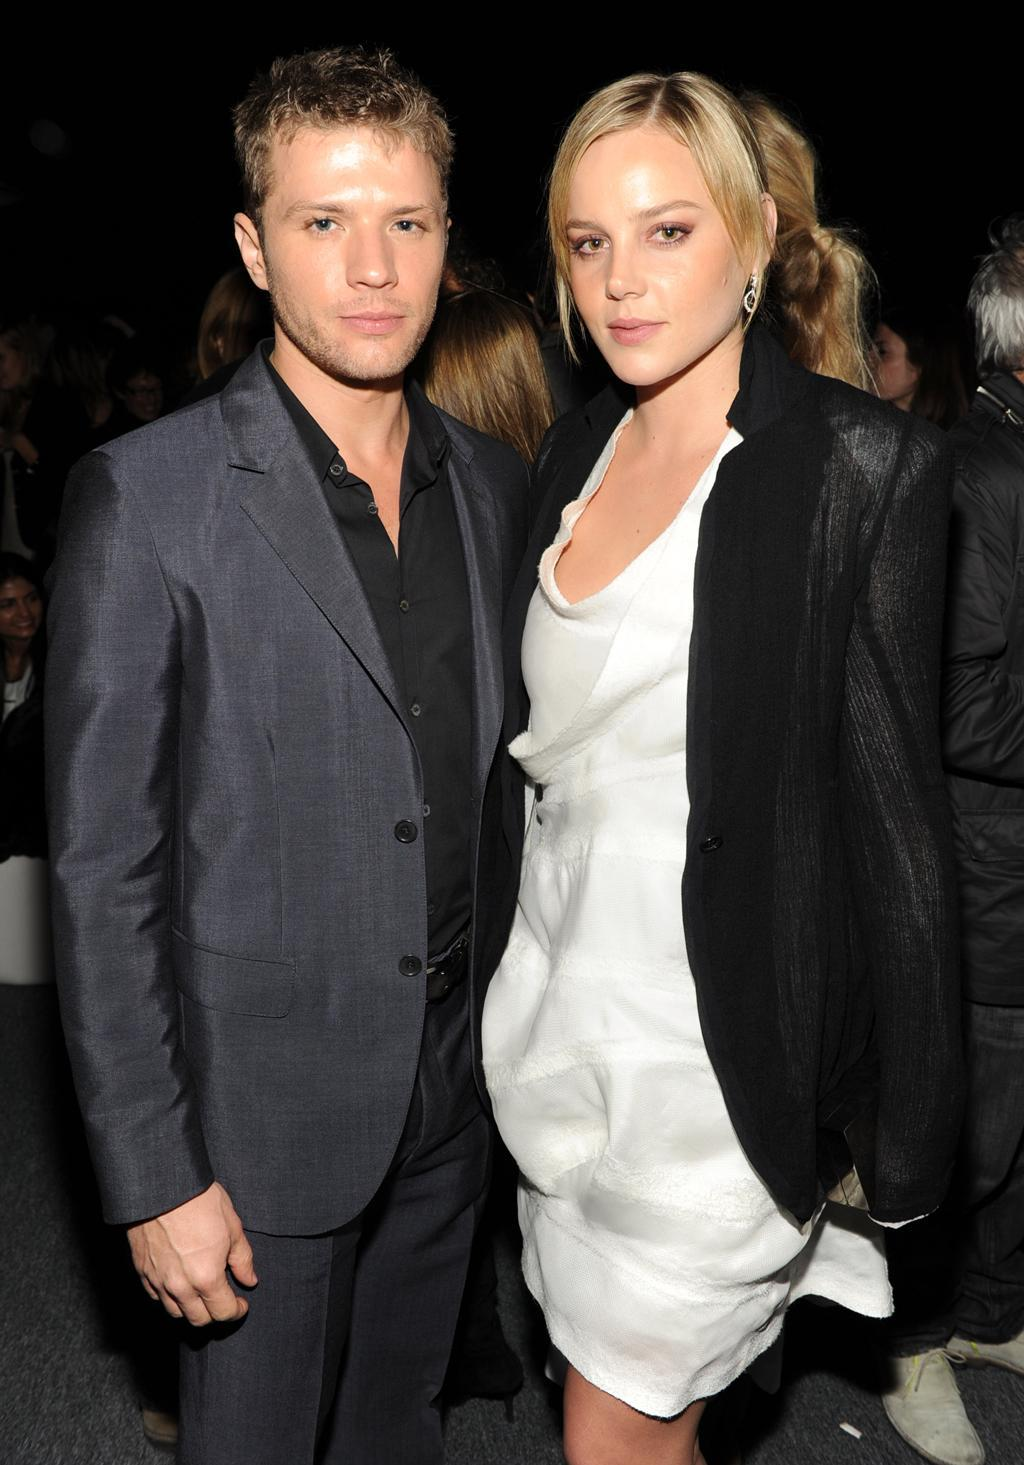 Ryan Phillippe and Abbie Cornish. (Photo: Getty Images)